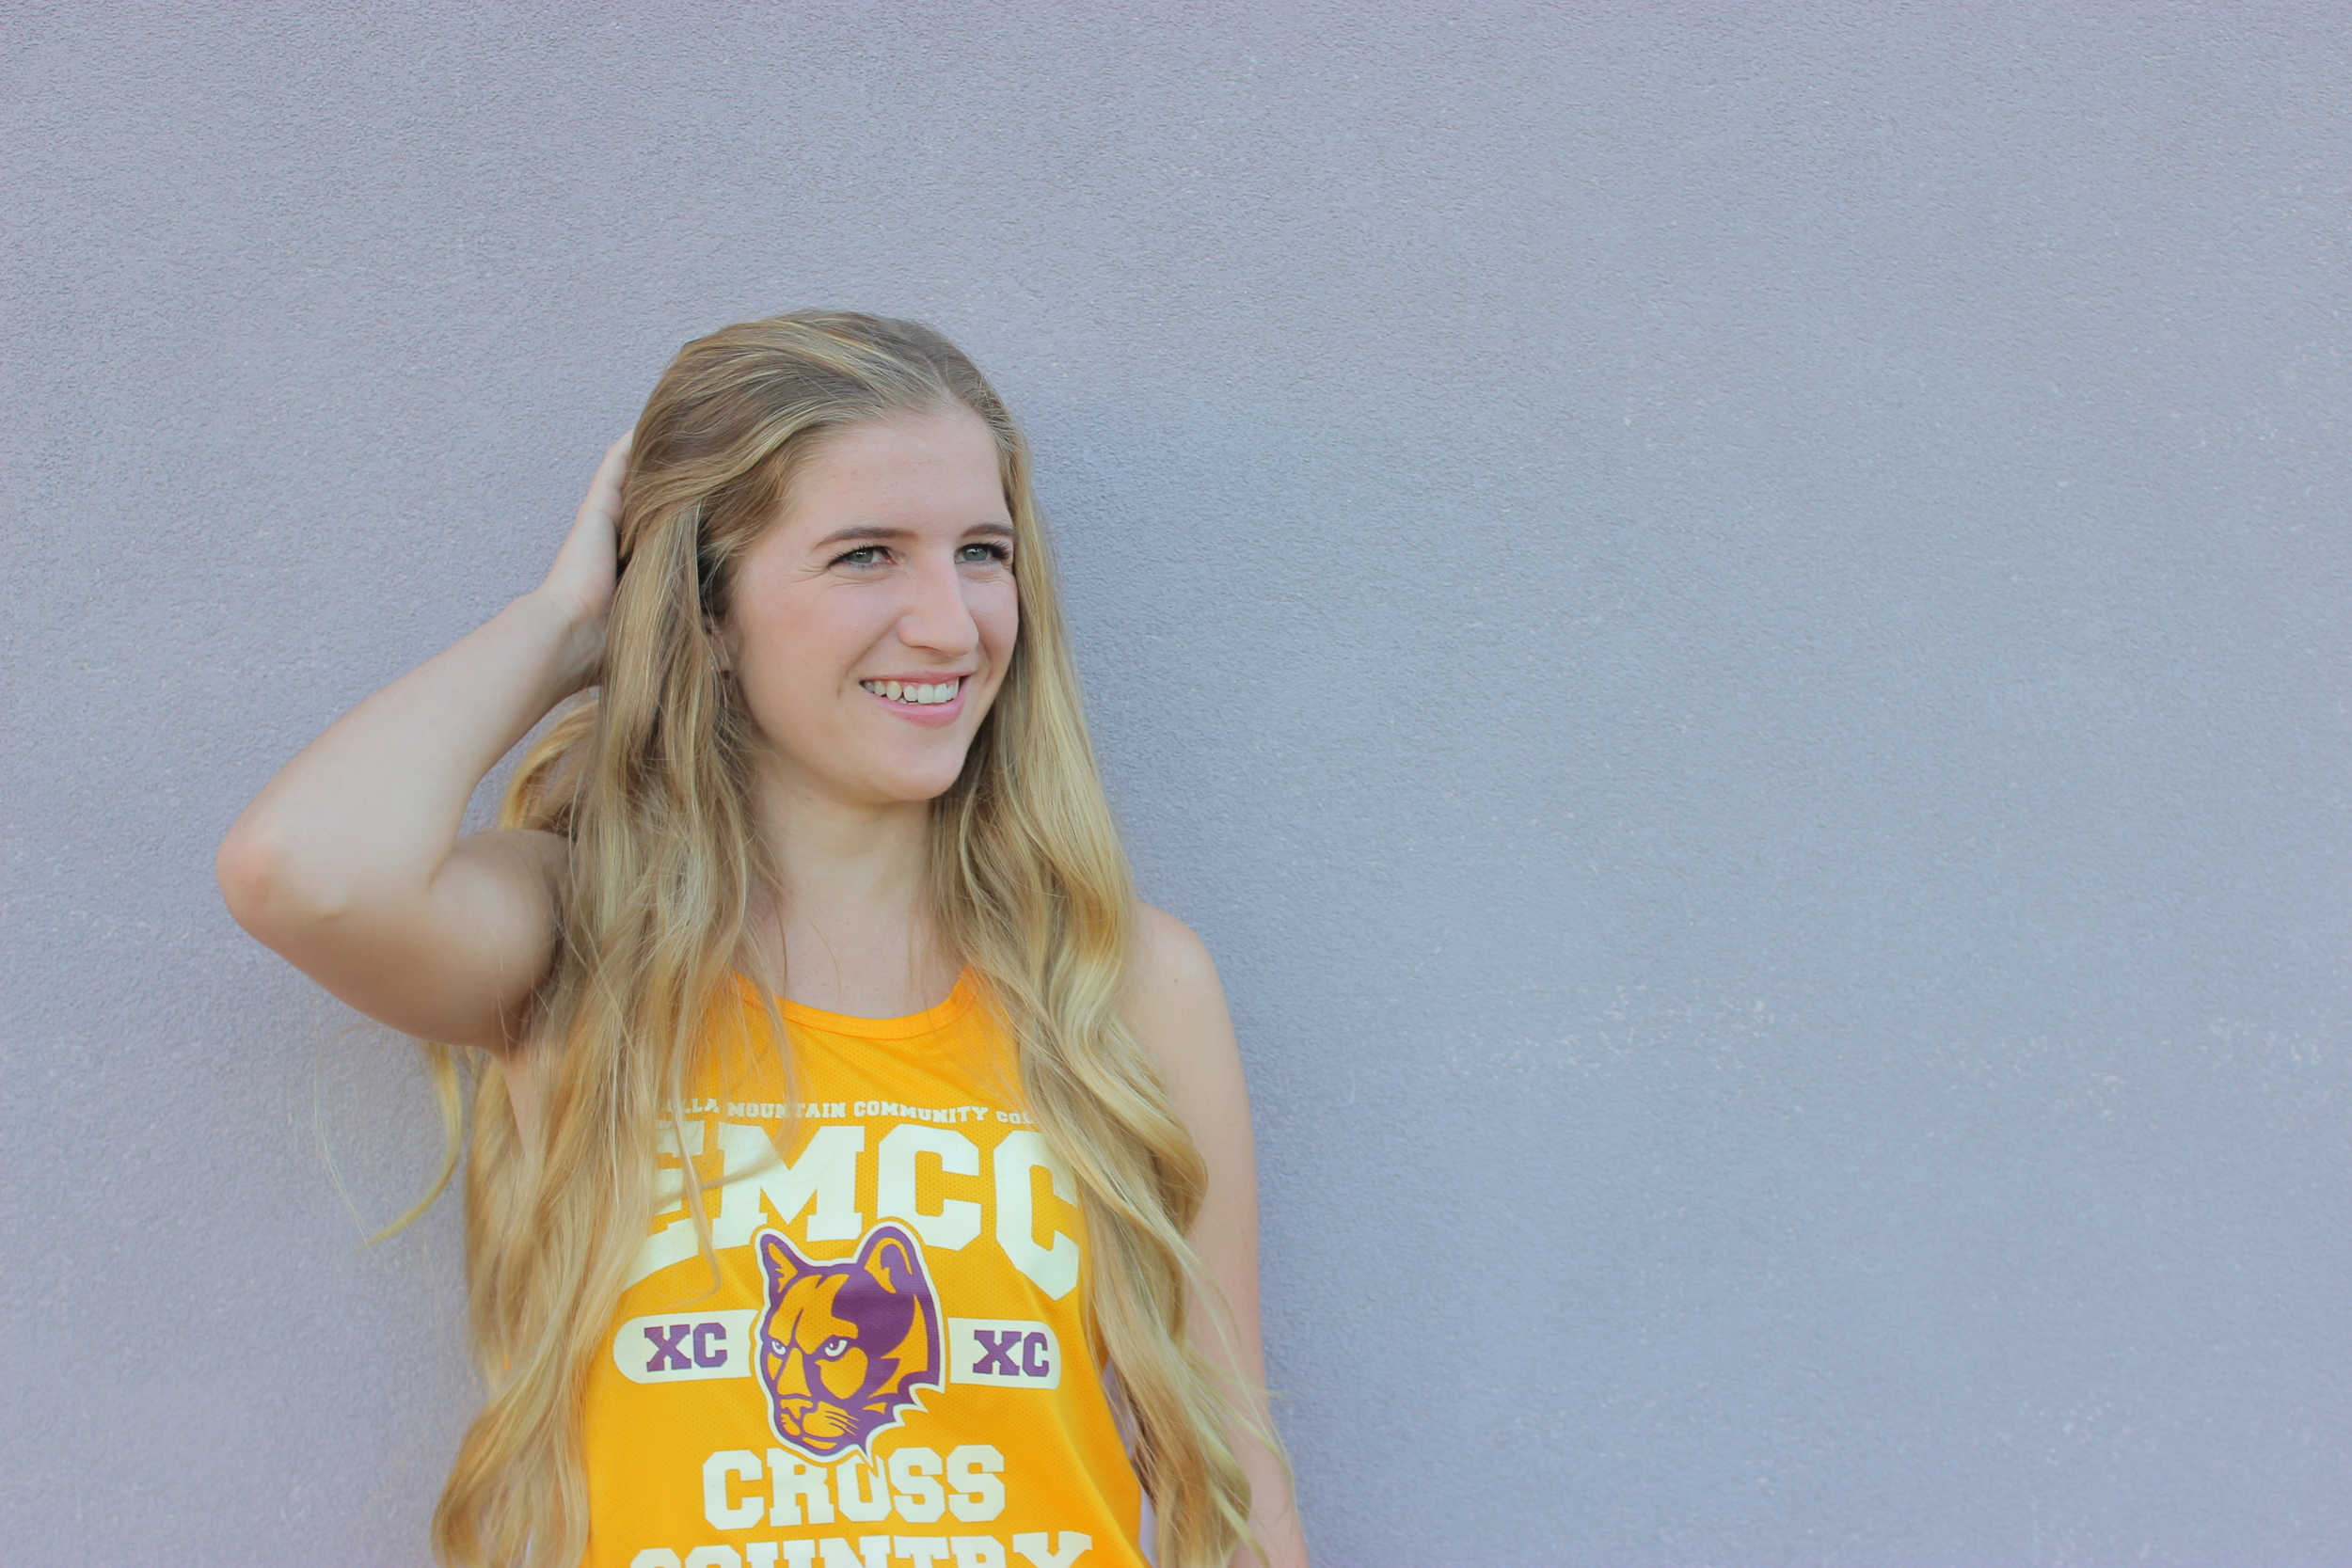 Makenzie is just the cutest, we had fun messing around when I took pictures of the EMCC cross country team( I assistant coached last Fall)